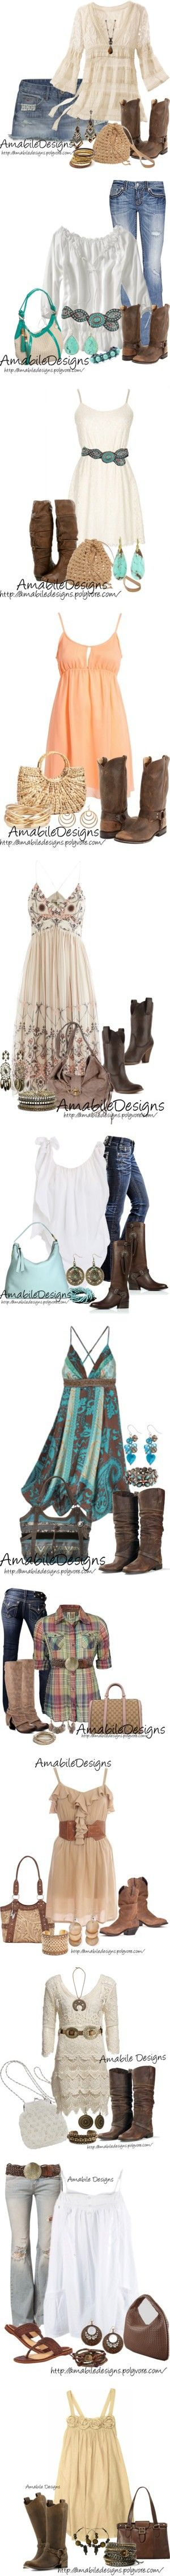 "I Love All of these outfits!!!  ""Country Chic Look"""